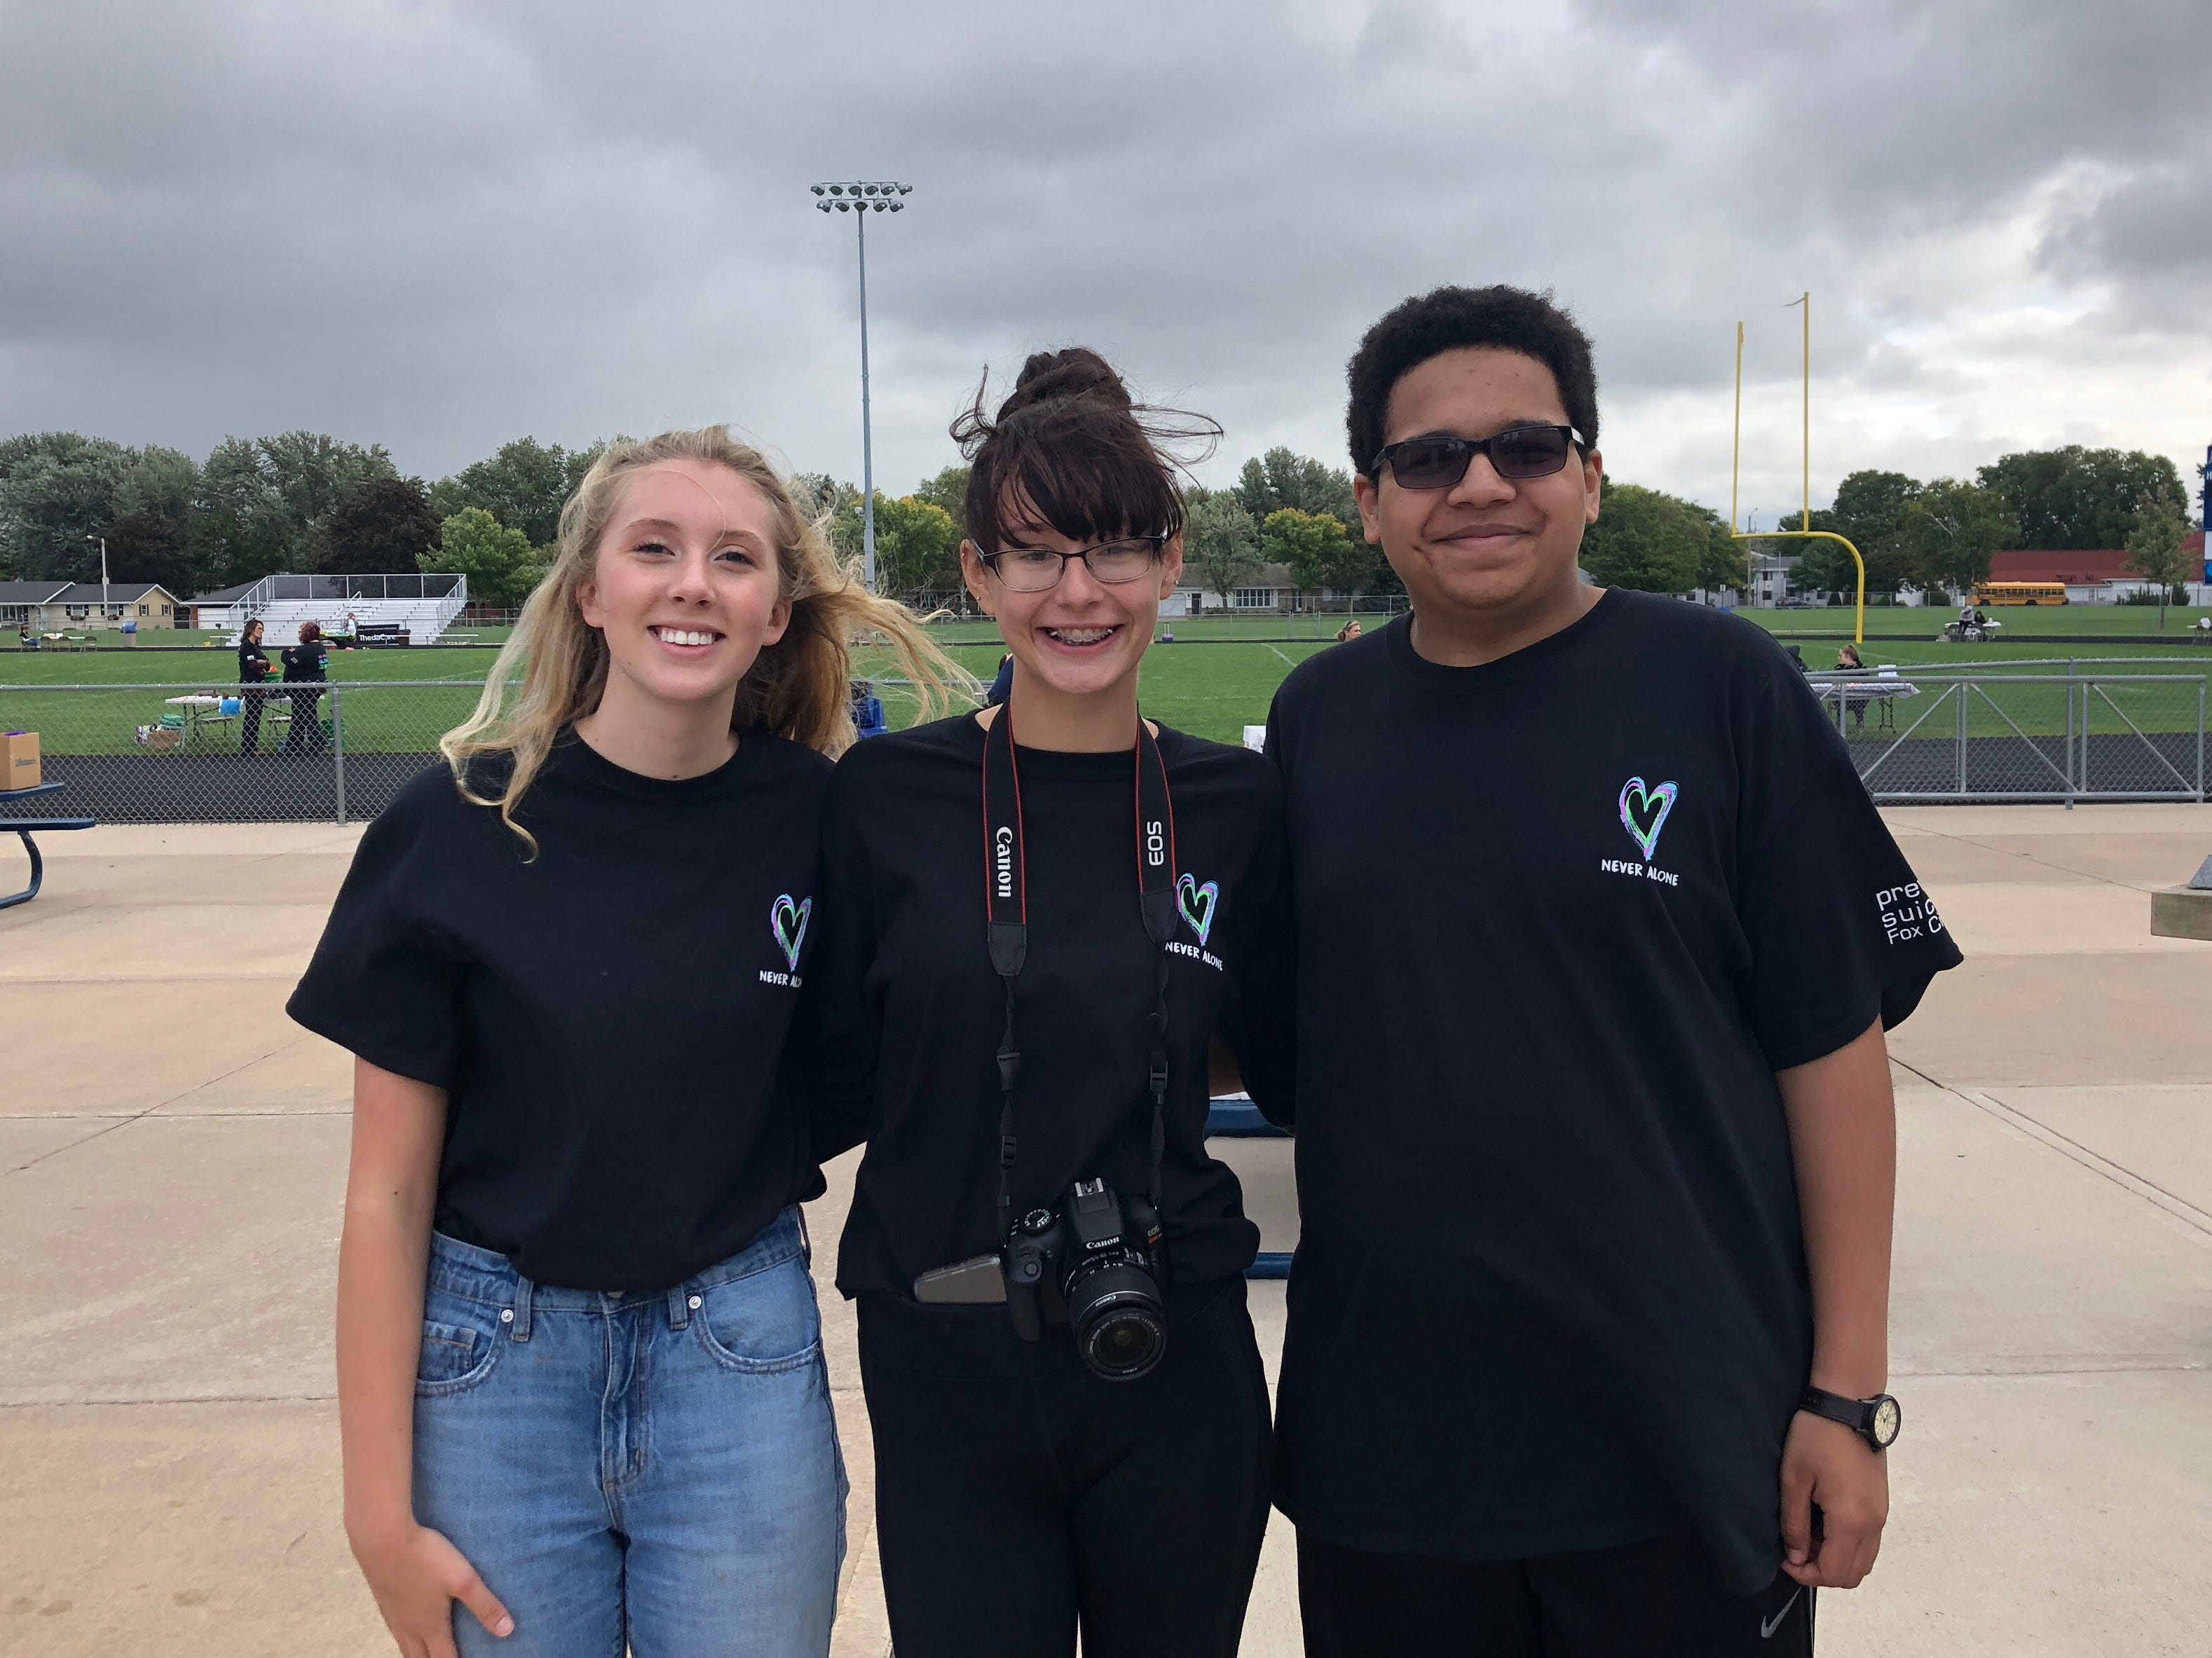 Student organizers Amidala Czaja, Montannah Weiss and Keaton Duffe created a mental health festival for students in Little Chute.